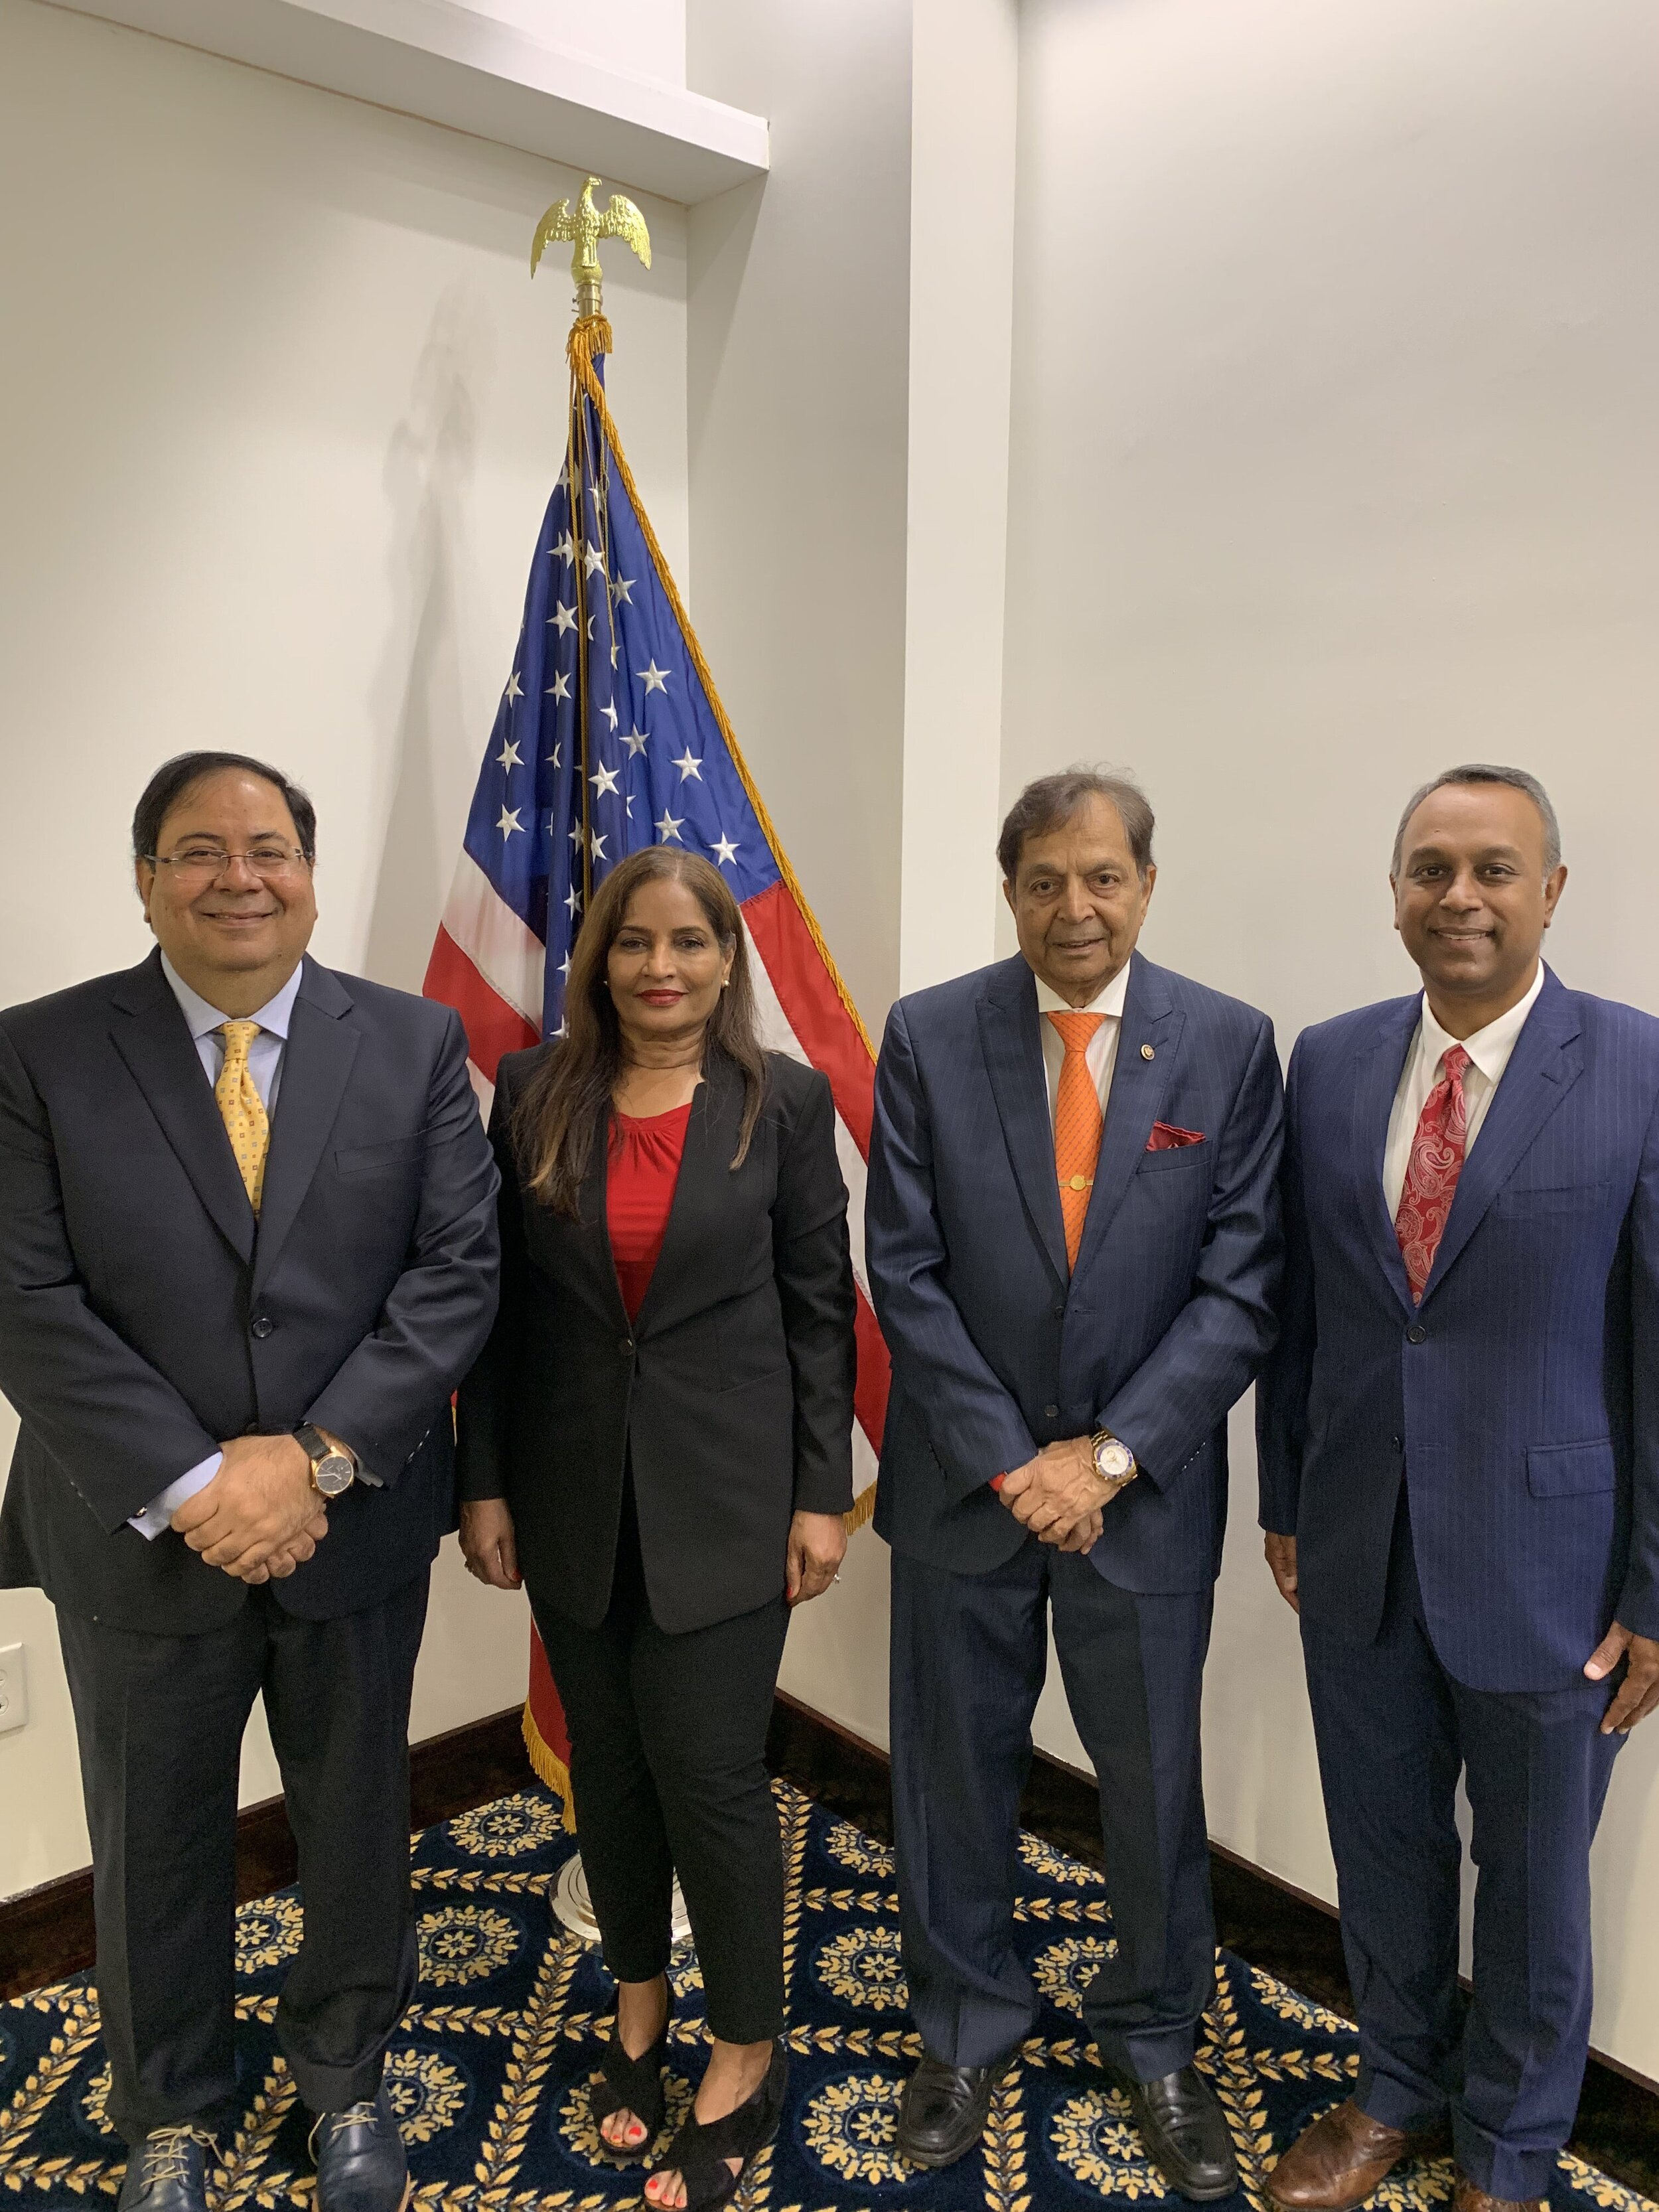 From Left to Right:  Mr. Suresh Nichani, Dr. Udaya Shivangi (American Association of Physicians of Indian Origin), Dr. Sampat Shivangi and Mr. Joel Anand Samy (Co-Founder of International Leaders Summit)